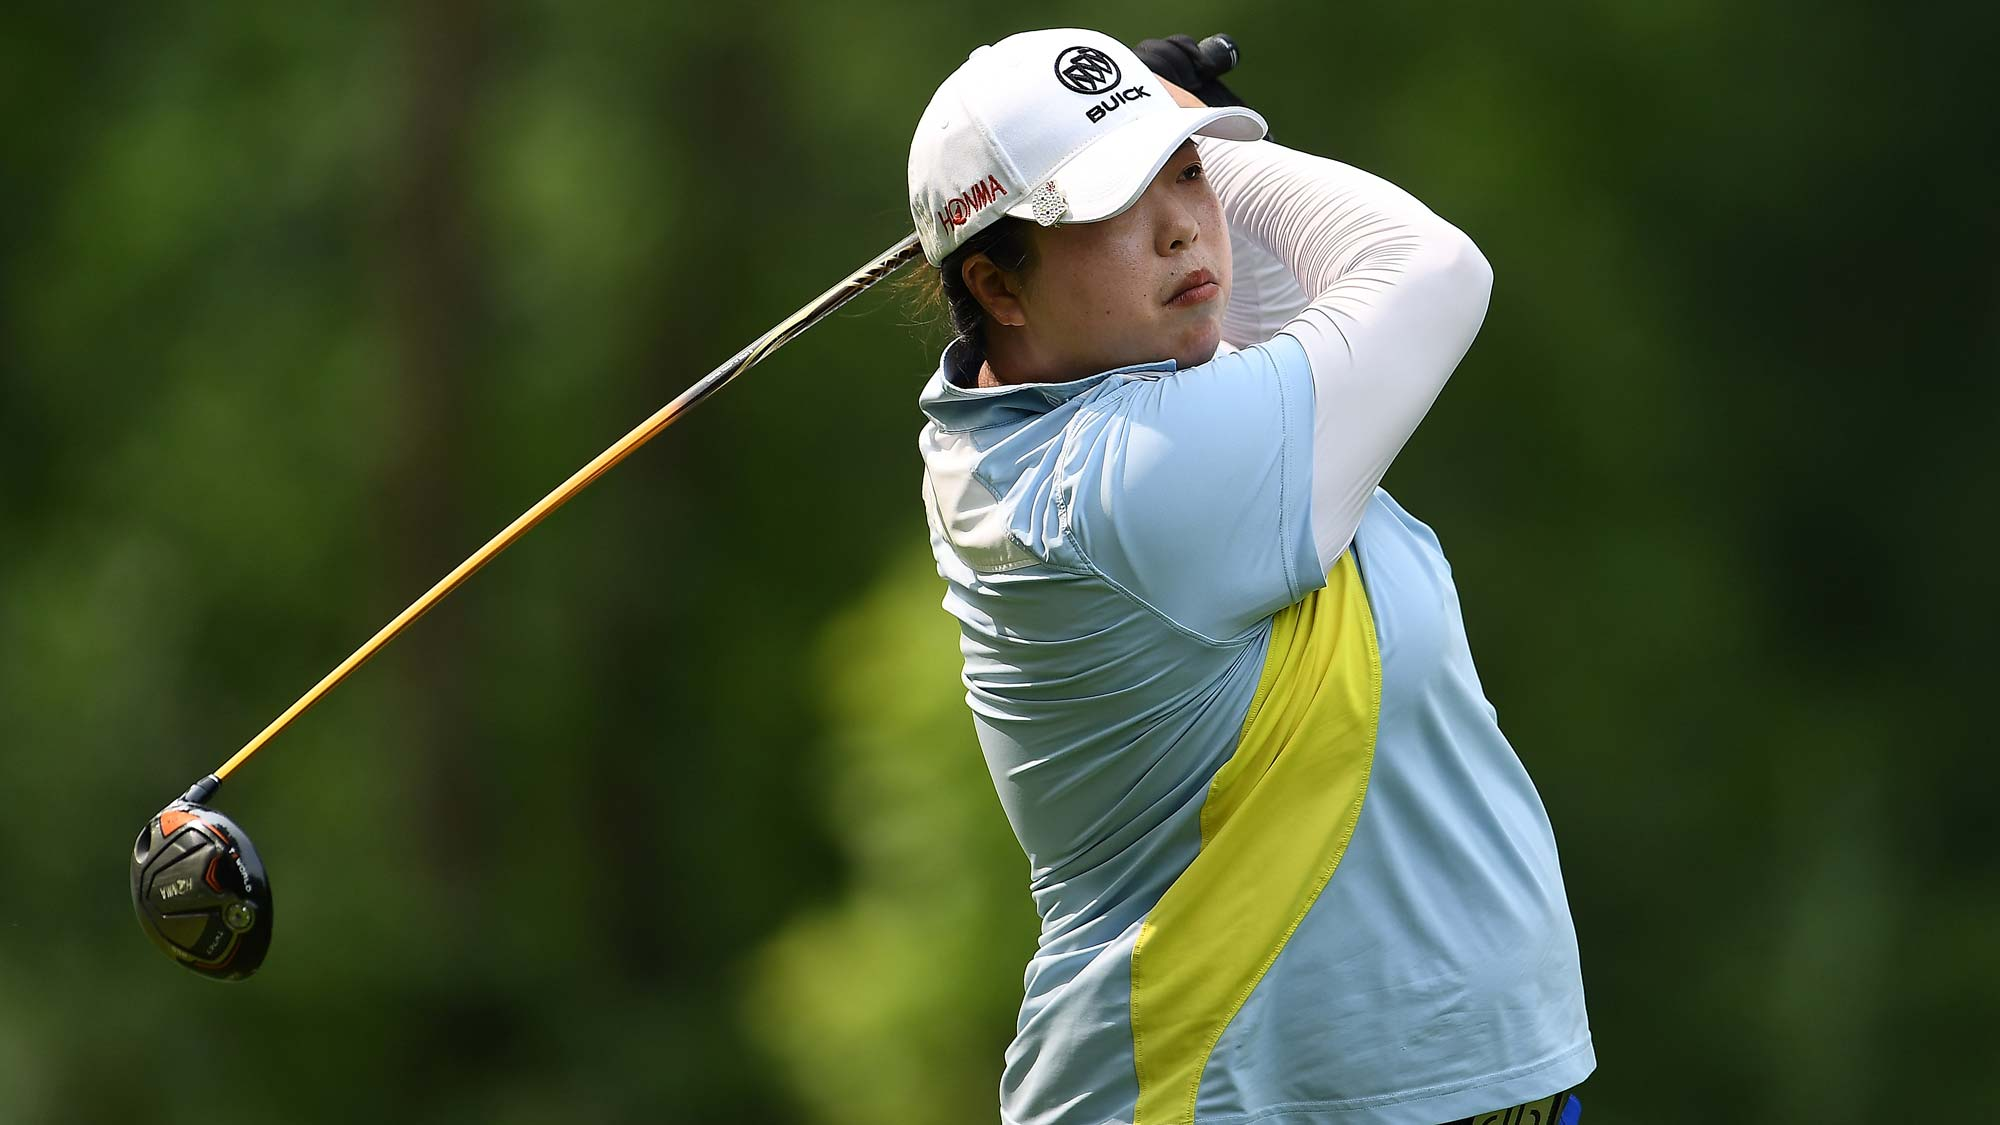 Shanshan Feng of China hits her tee shot on the third hole during the final round of the Thornberry Creek LPGA Classic